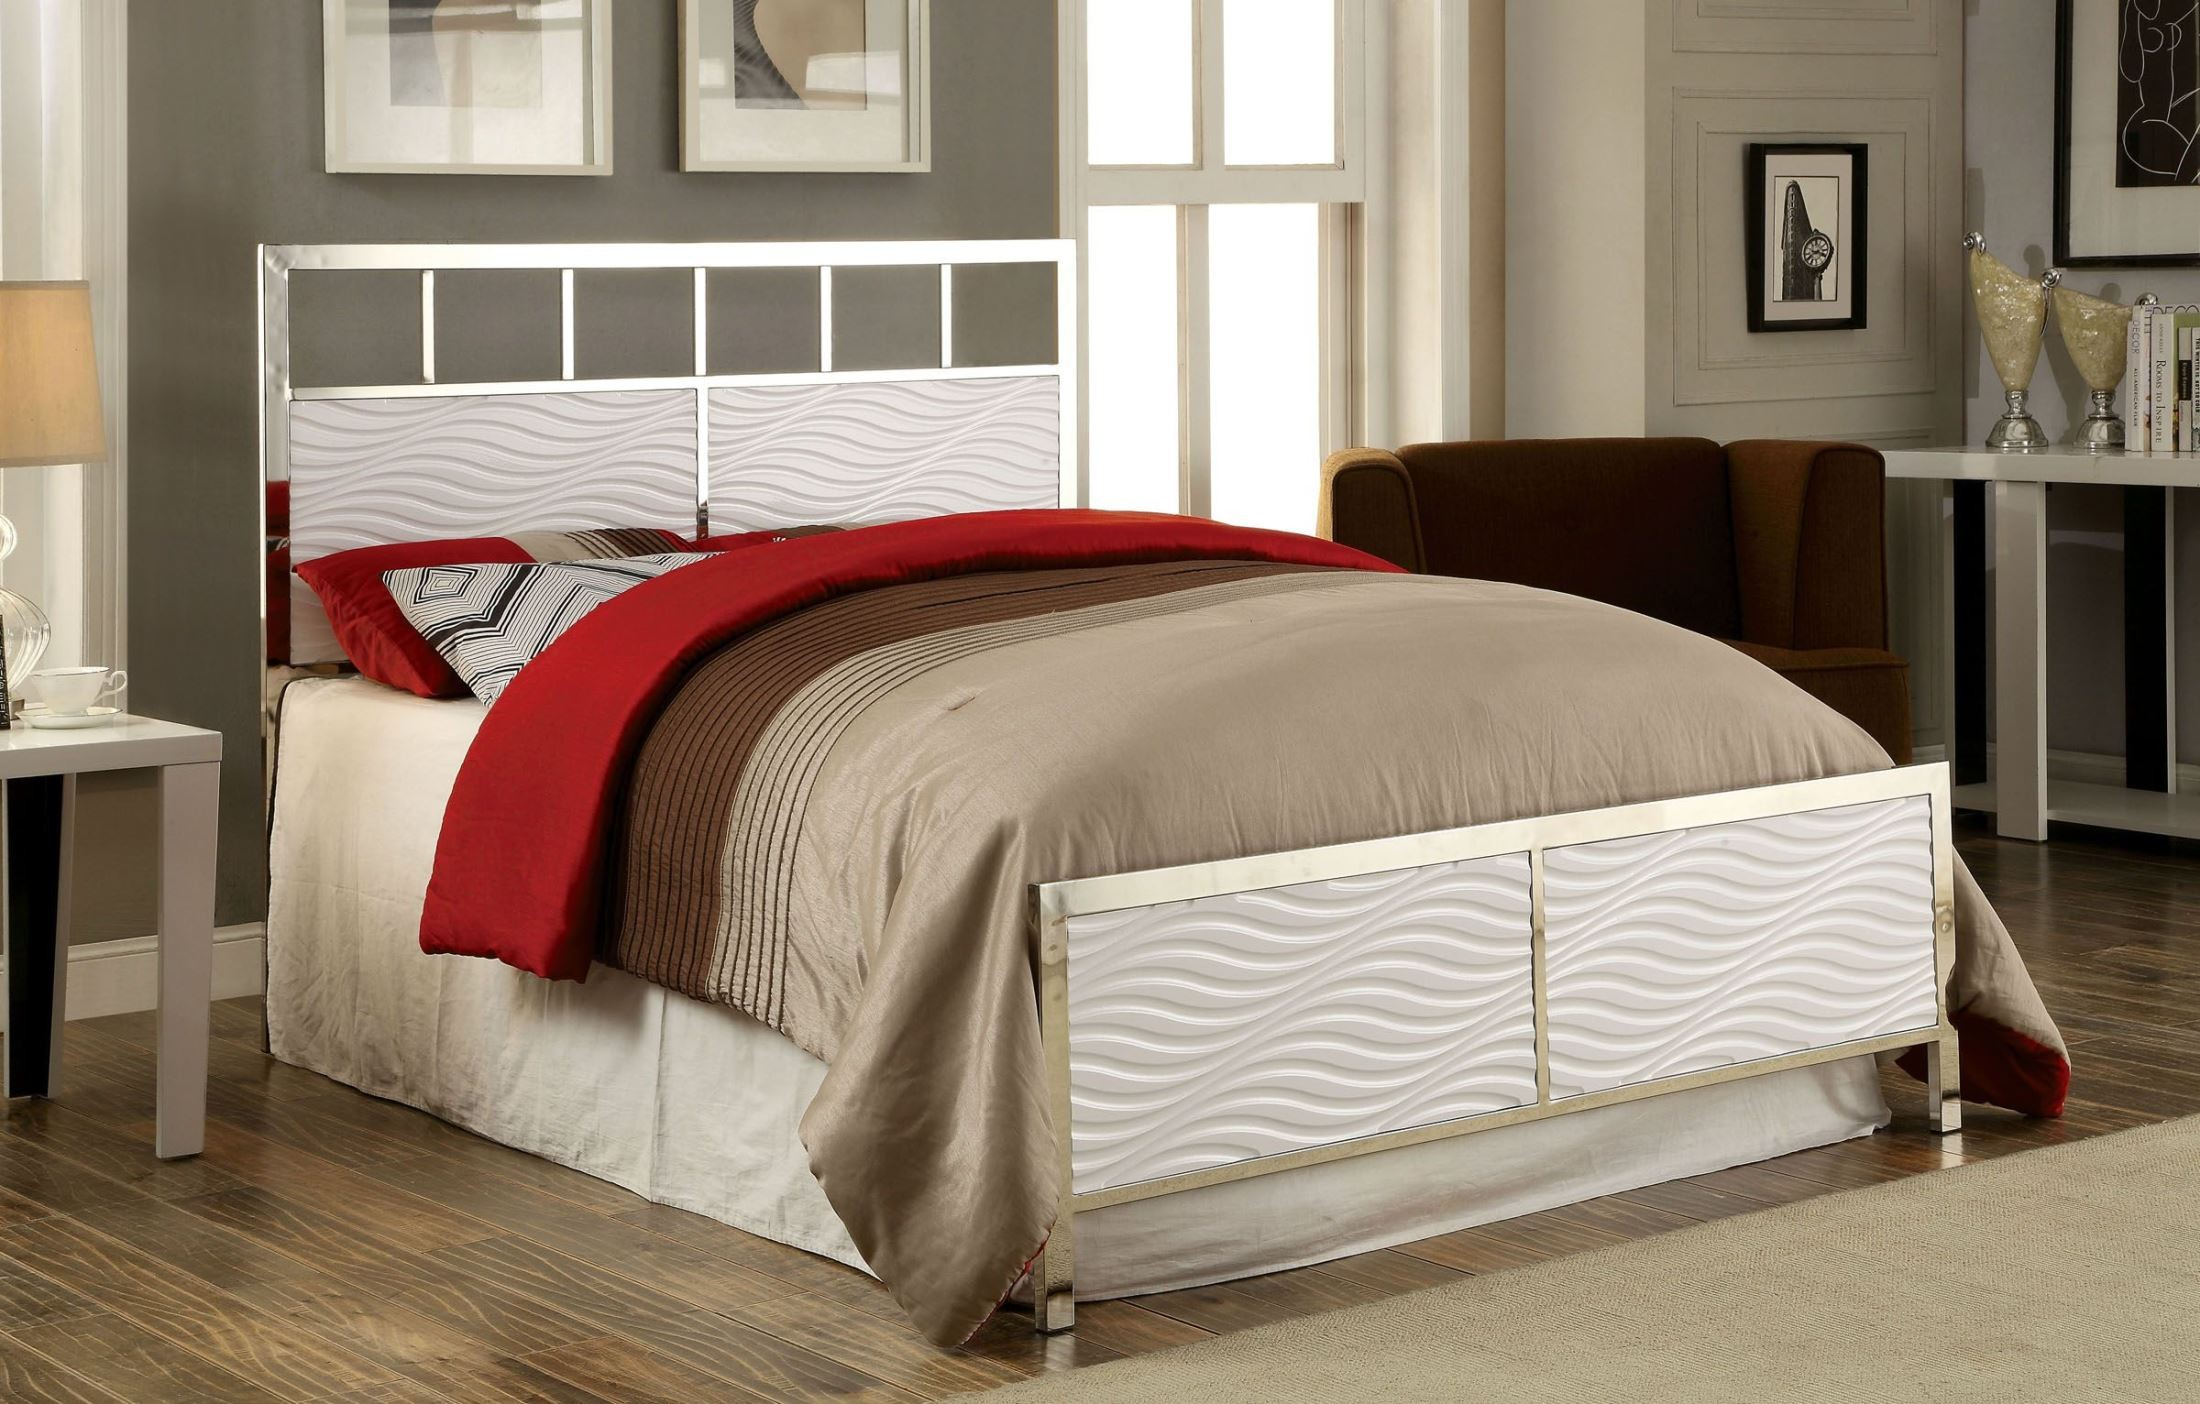 Calvin white king headboard and footboard from furniture for Divan footboard